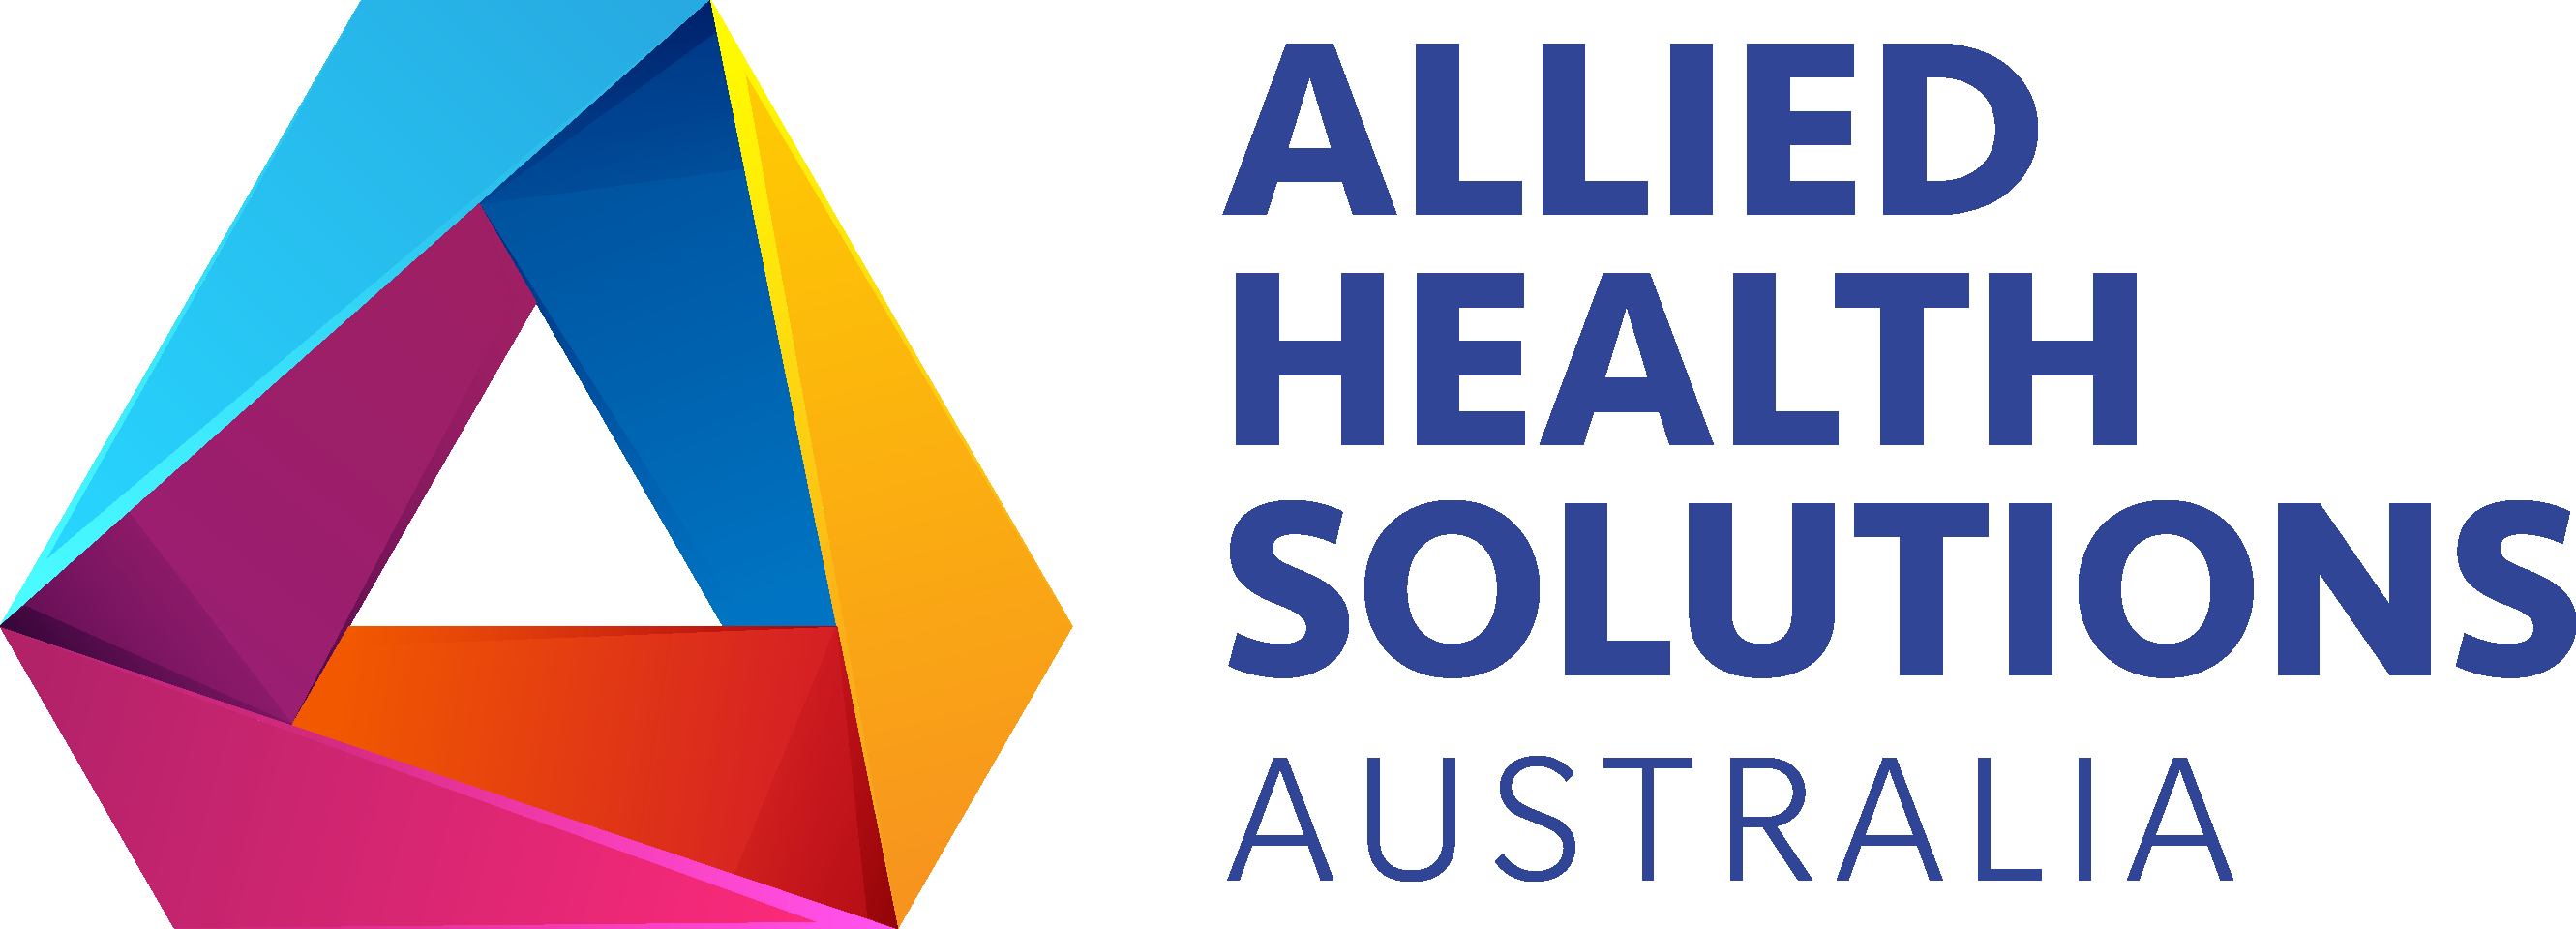 allied health 1 Table 1 lists many of the allied health professions, as well as the sources listing these as allied health professions allied health educational programs seek to prepare competent allied health professionals and leaders for practice across multiple health care settings.